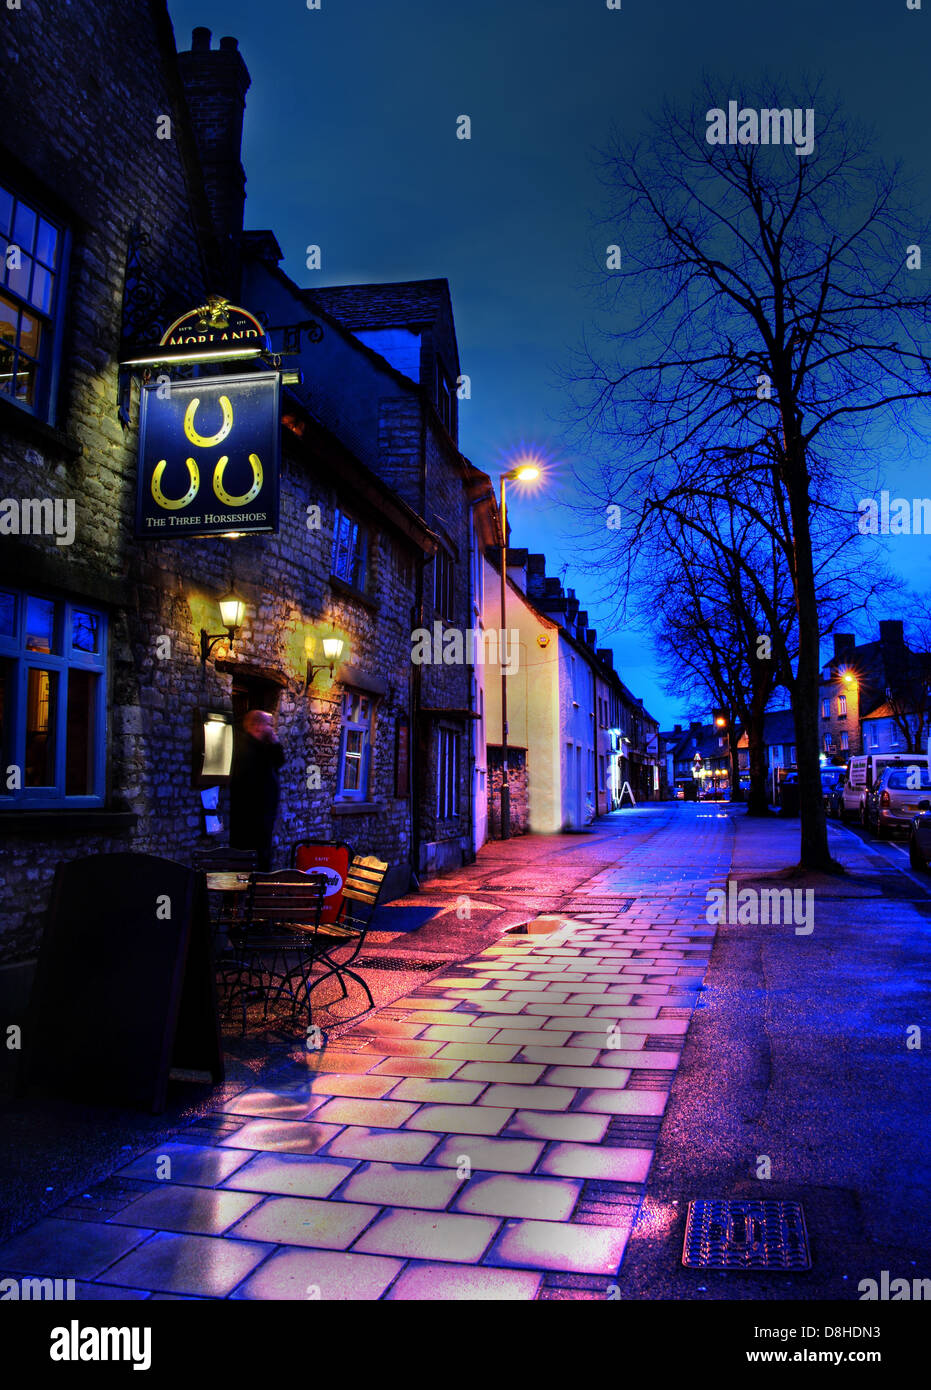 West,Oxfordshire,DC,District,Council,WODC,Night,shot,time,nighttime,England,GB,UK,Great,Britain,Cottswold,town,David,Cameron,constituency,blue,bar,public,house,houses,at,in,wet,pavement,drinking,CAMRA,drinker,beer,ale,lager,bitter,tourist,tourism,Cotswold,Cotswolds,Cottswolds,dark,spooky,gotonysmith,Buy Pictures of,Buy Images Of